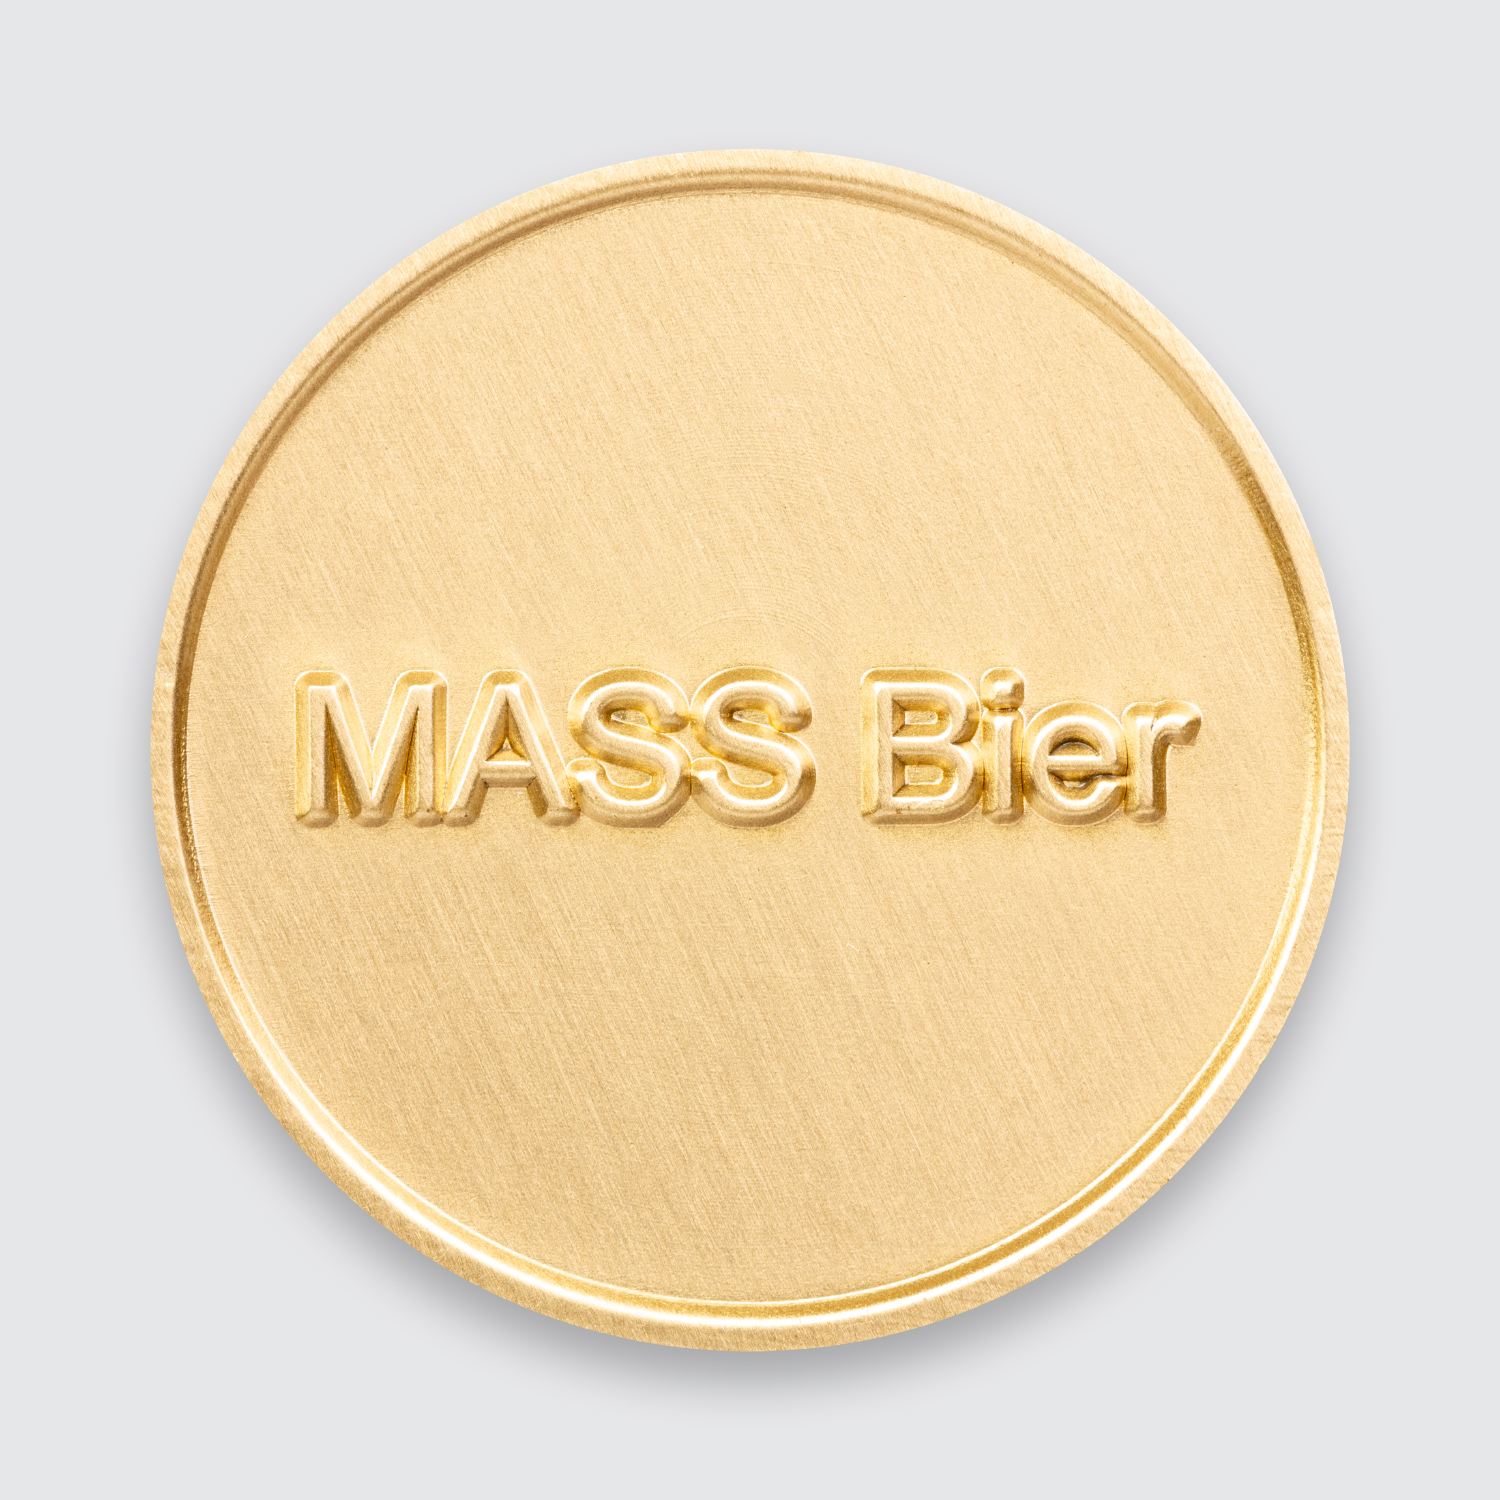 metalljeton mass bier